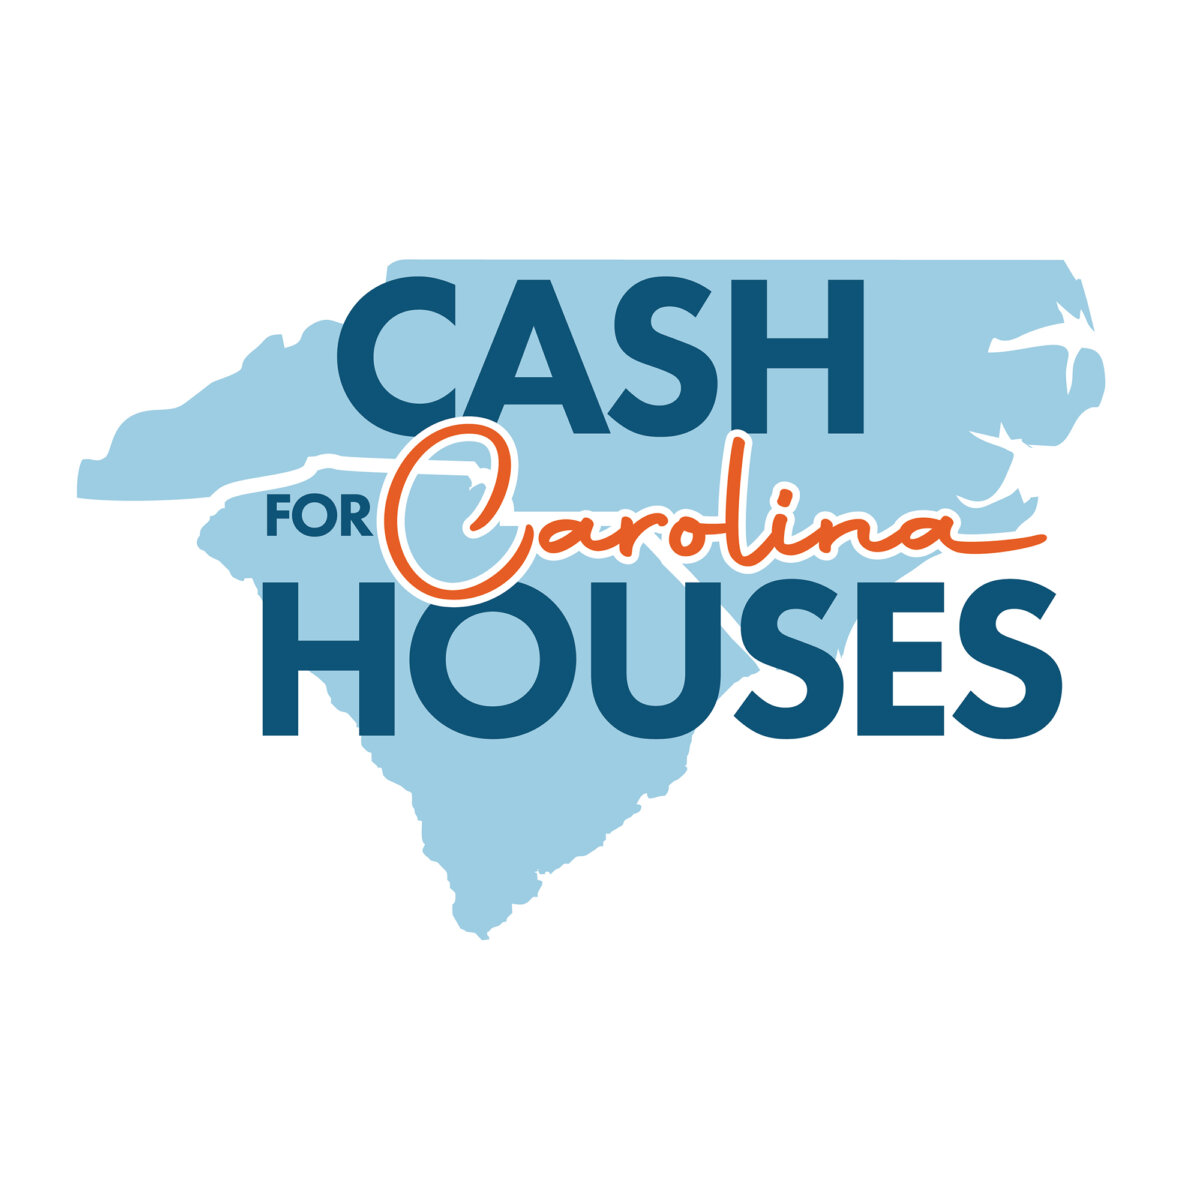 Cash for Carolina Houses logo